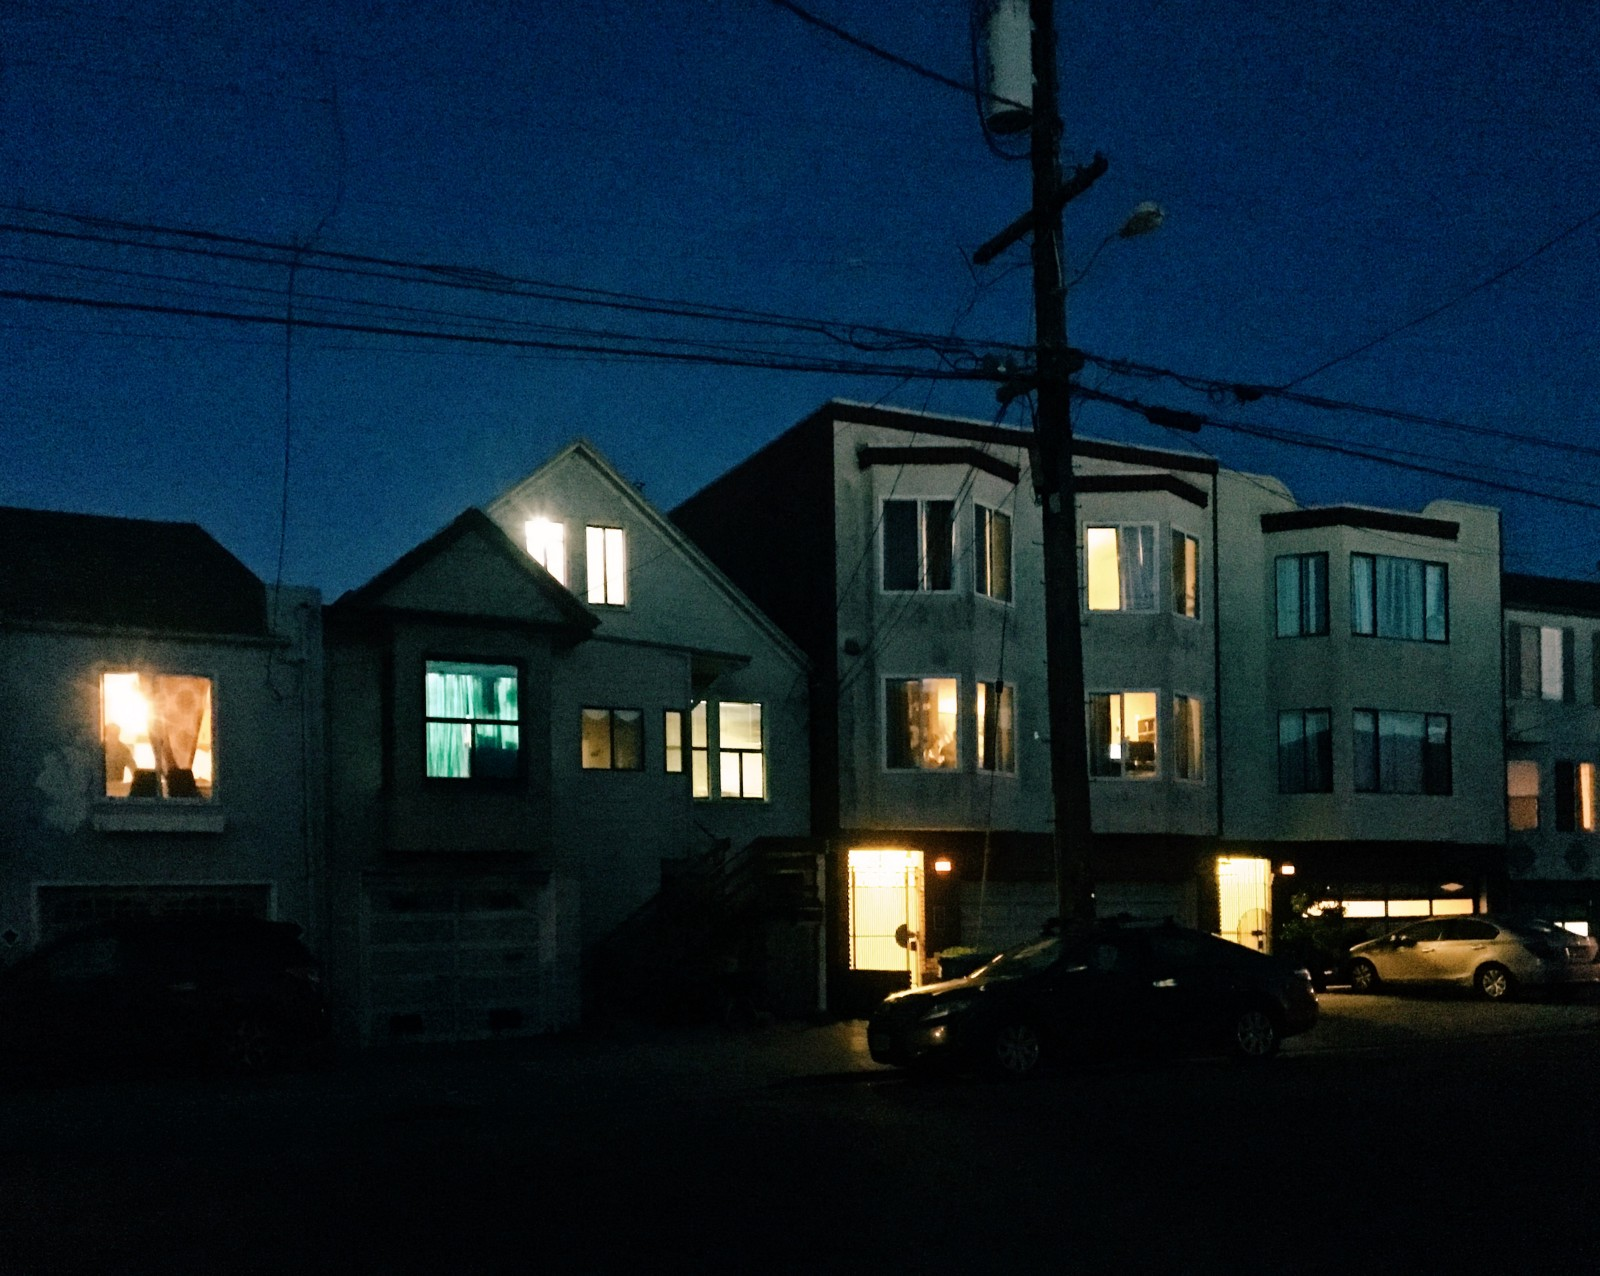 Todd Hido row of houses at night with lights on